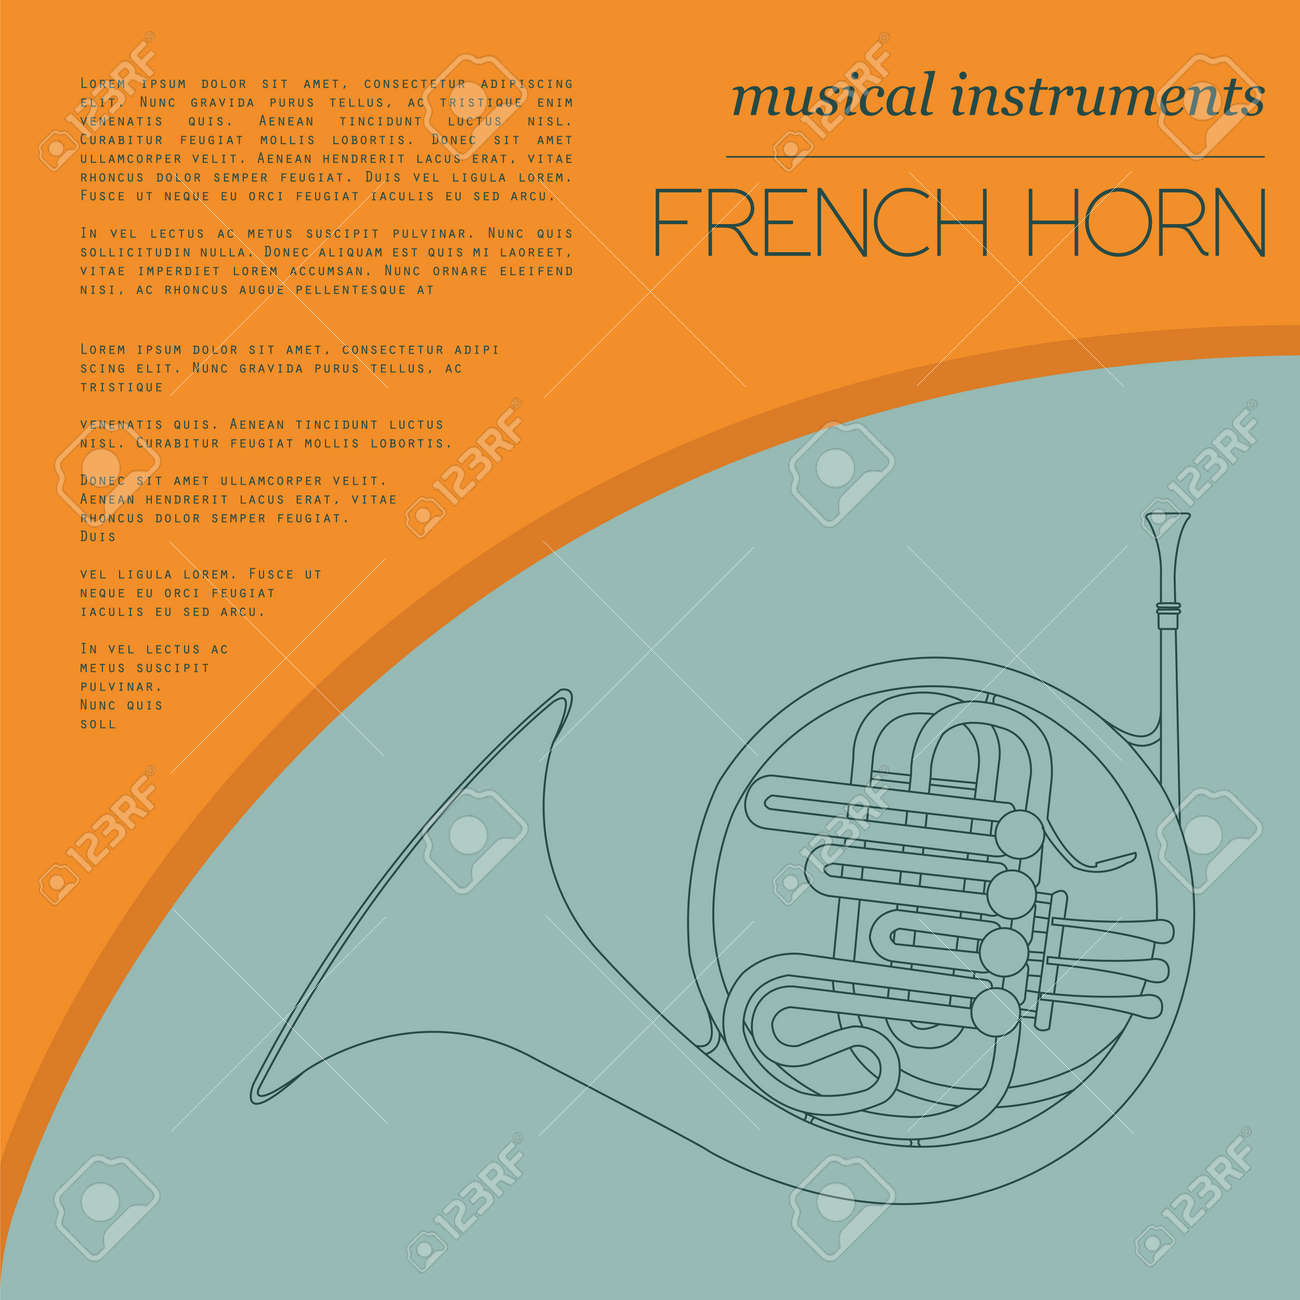 hight resolution of musical instruments graphic template french horn vector illustration stock vector 47951787